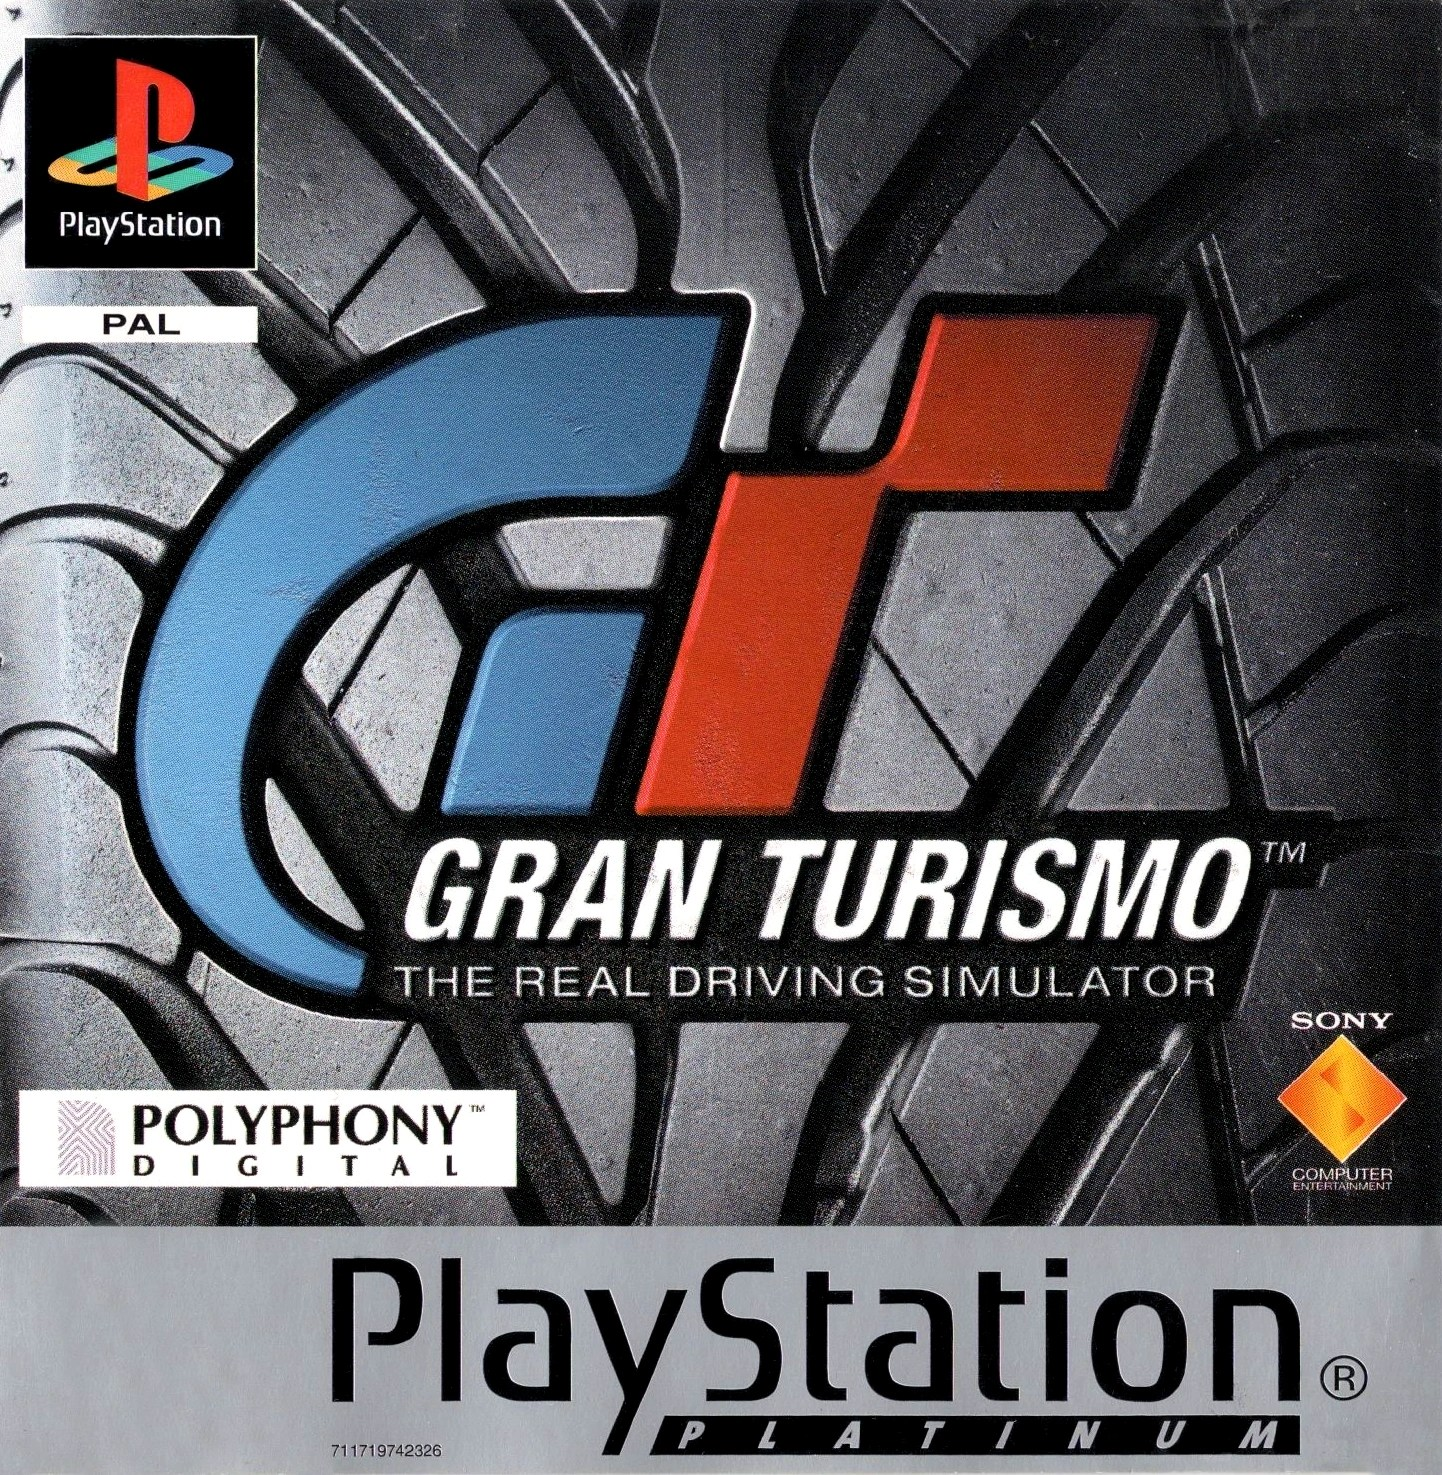 http://img2.wikia.nocookie.net/__cb20140102004942/logopedia/images/d/d3/Gran_Turismo_(Platinum).png